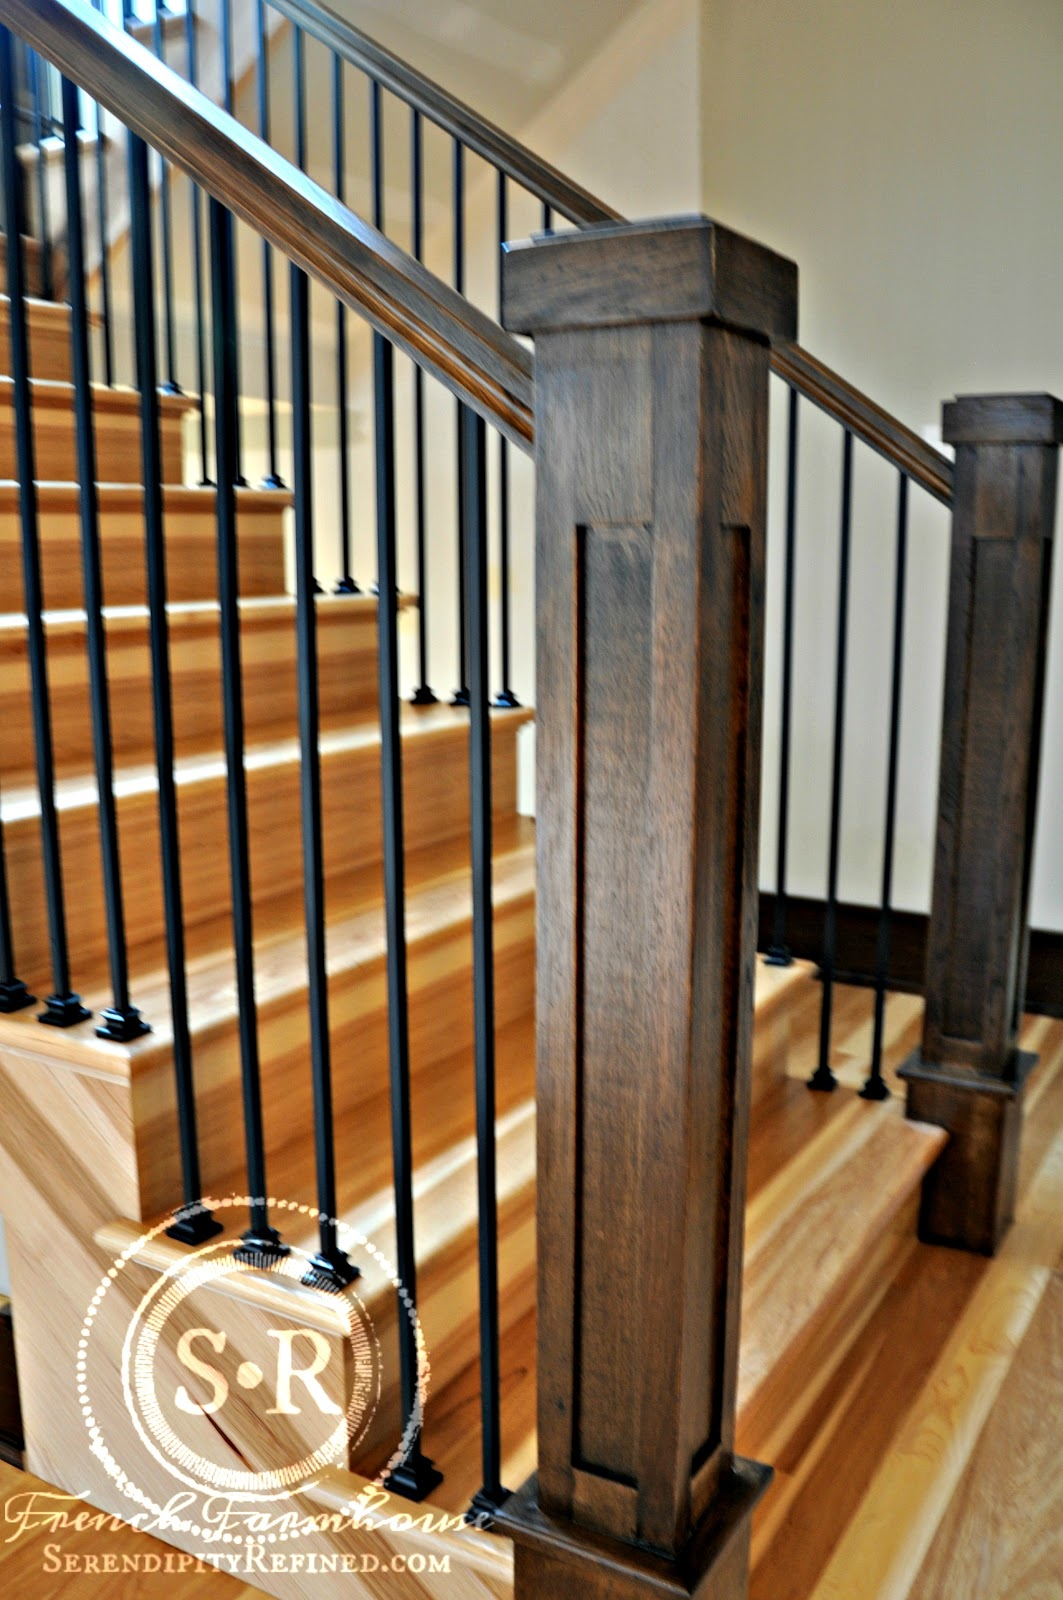 Serendipity Refined Blog Craftsman Style Residential Remodel